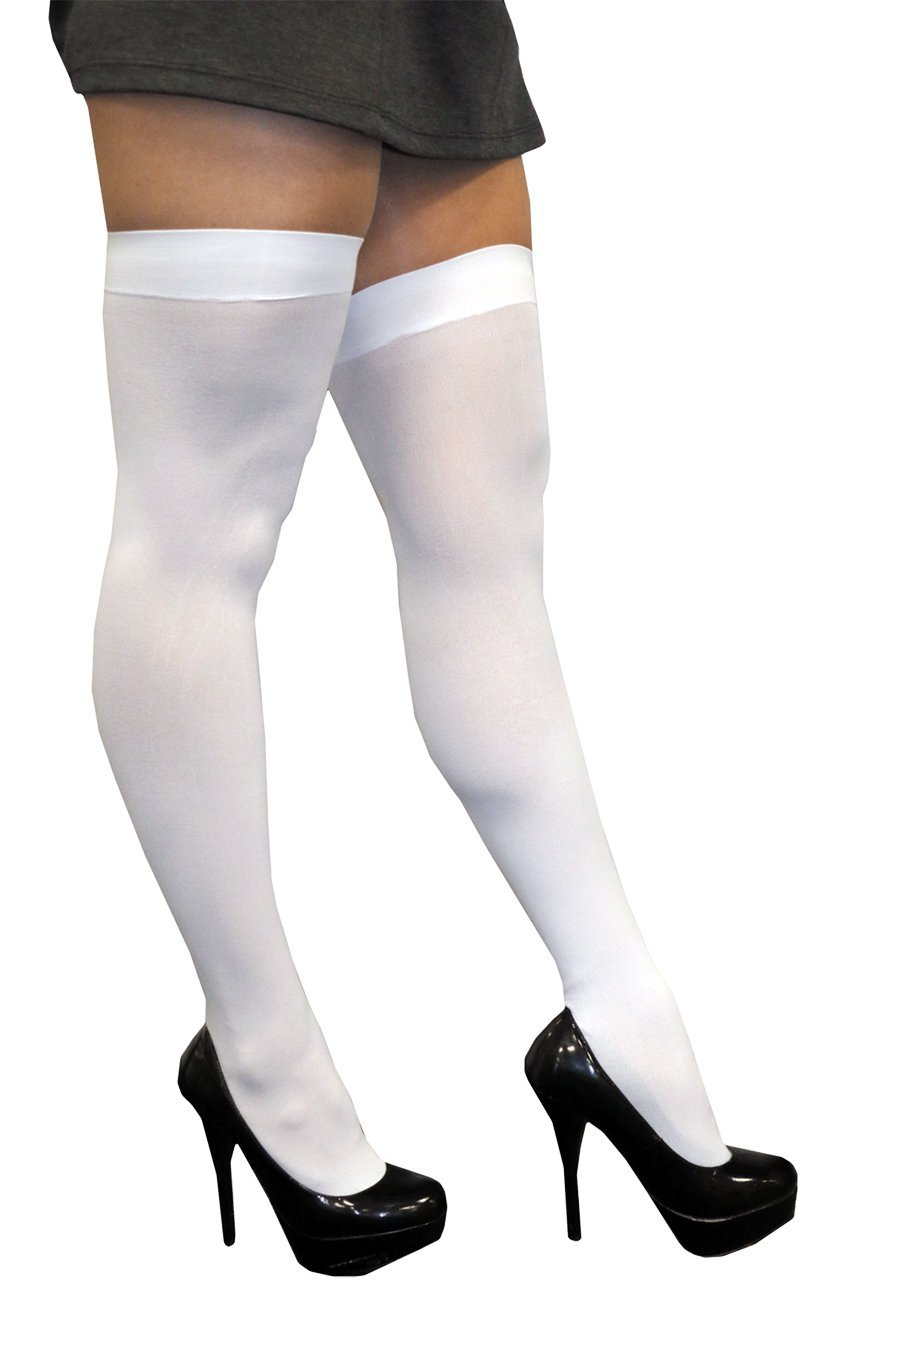 Oktoberfest Thigh High Stockings - The Costume Company | Fancy Dress Costumes Hire and Purchase Brisbane and Australia